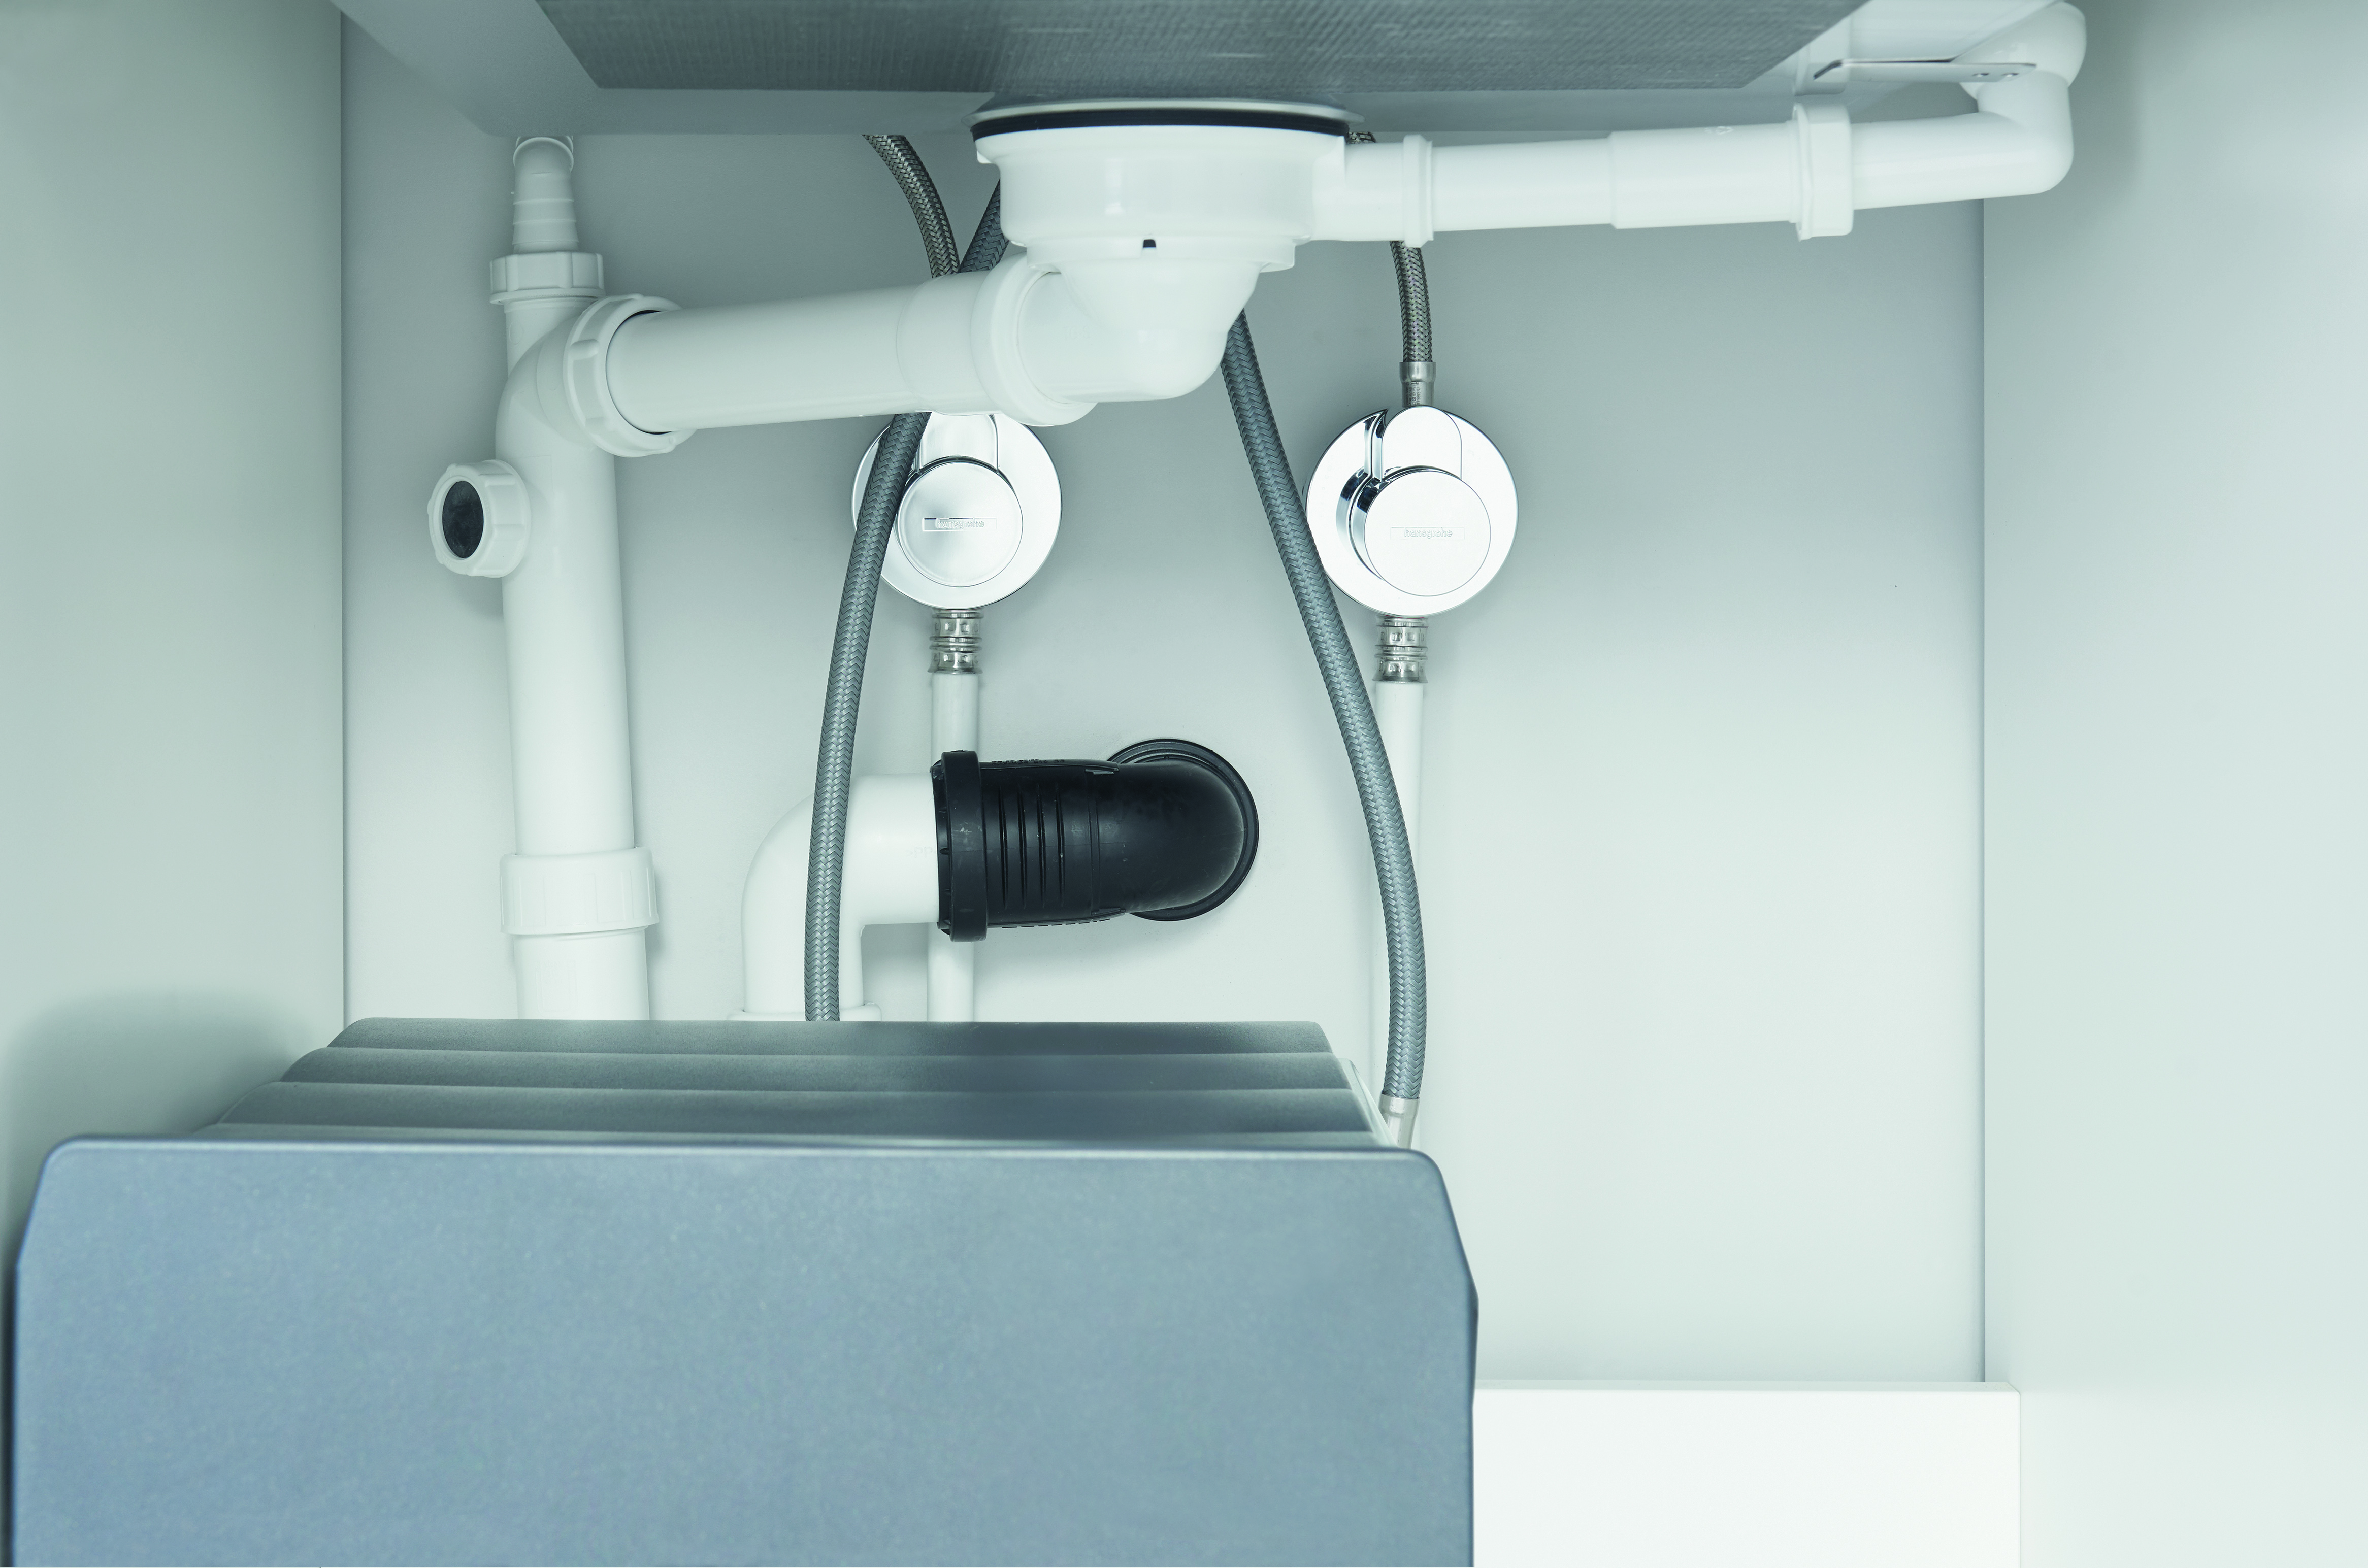 waste systems for stainless steel and